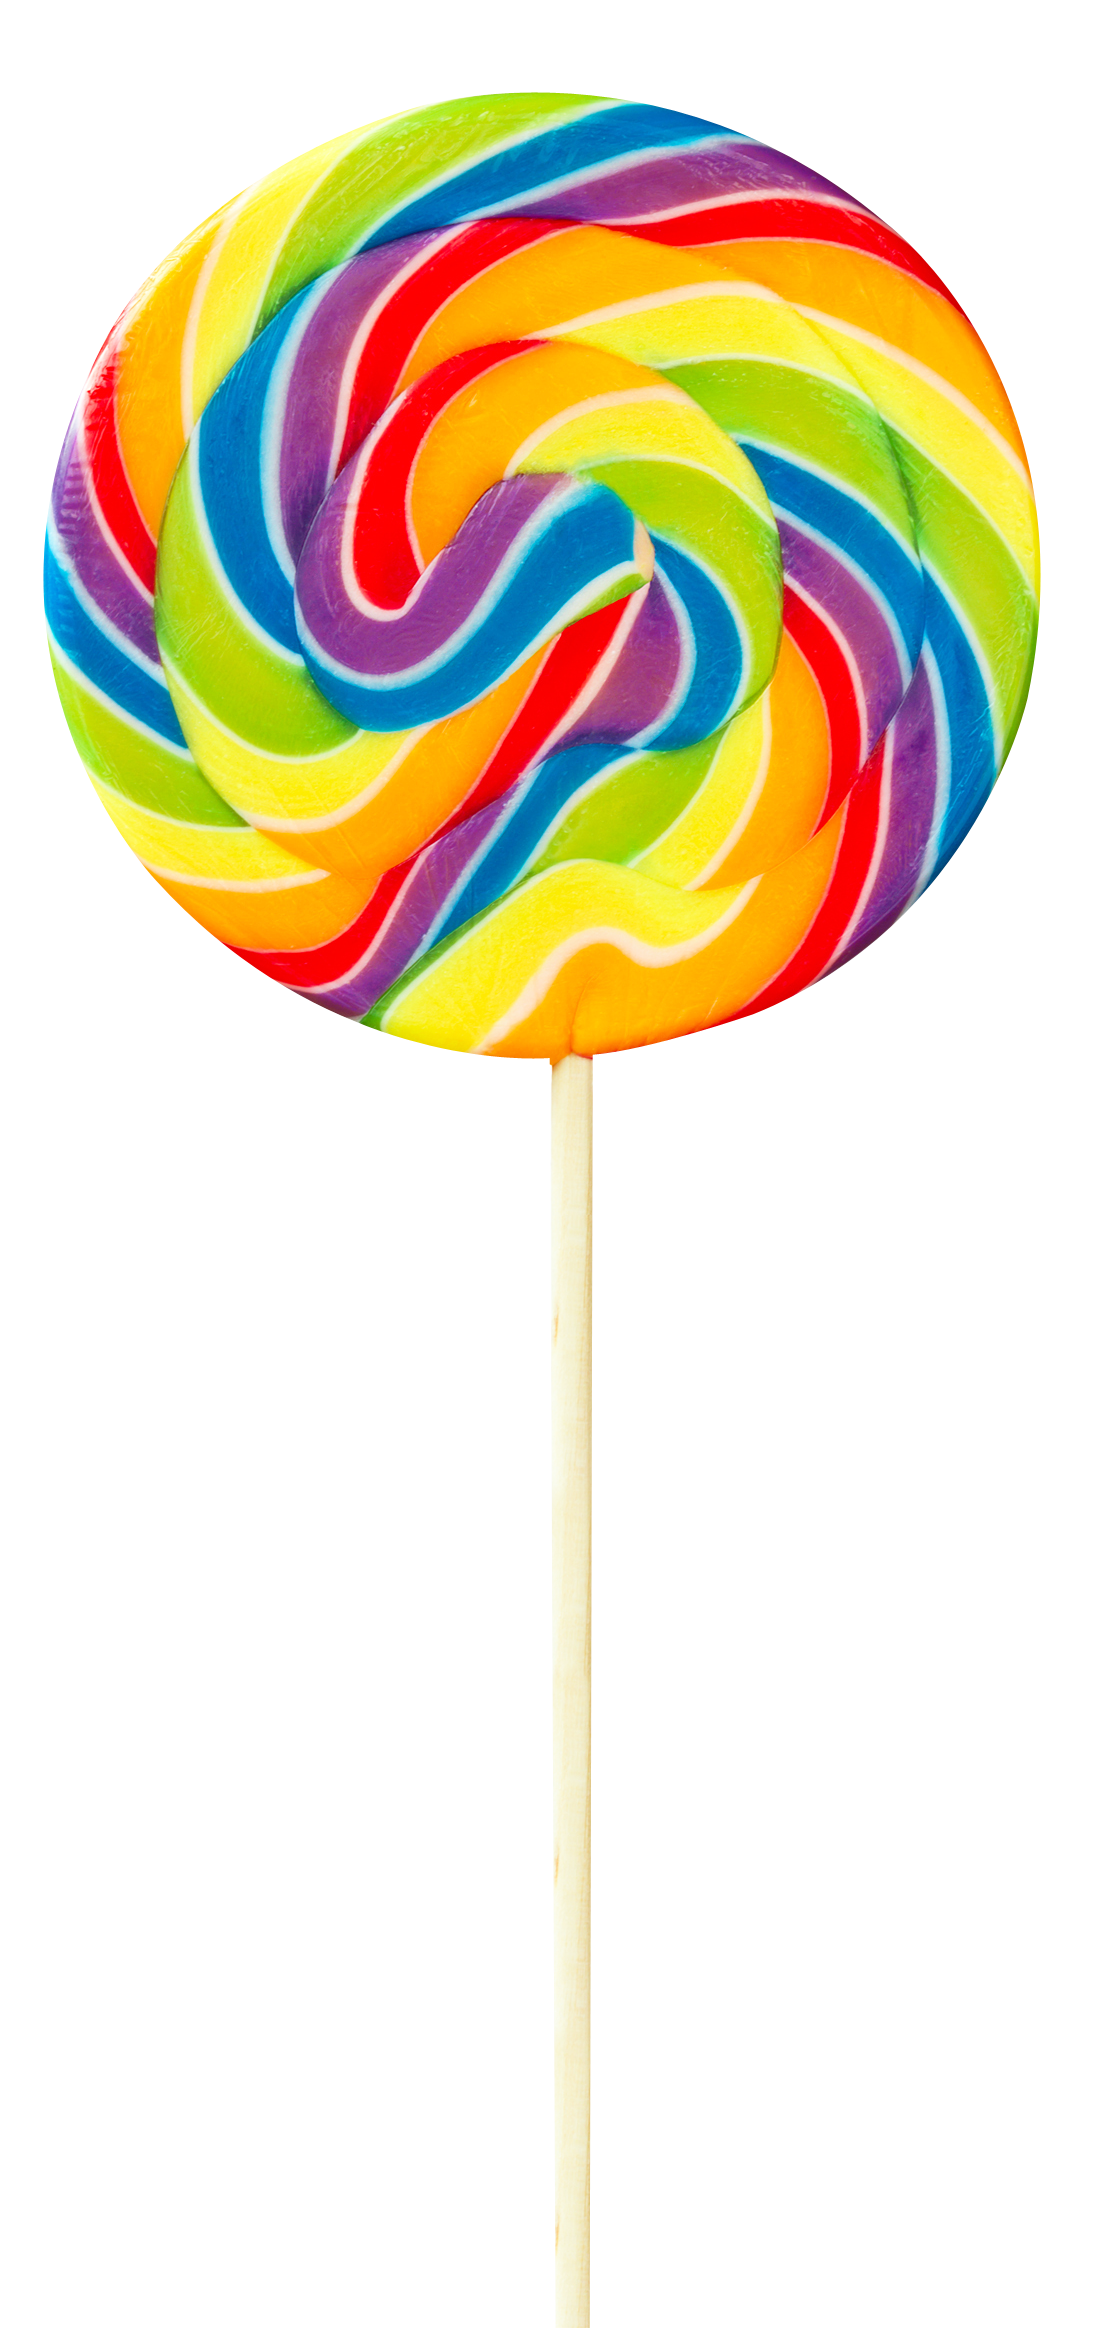 Transparent lollipop isomalt